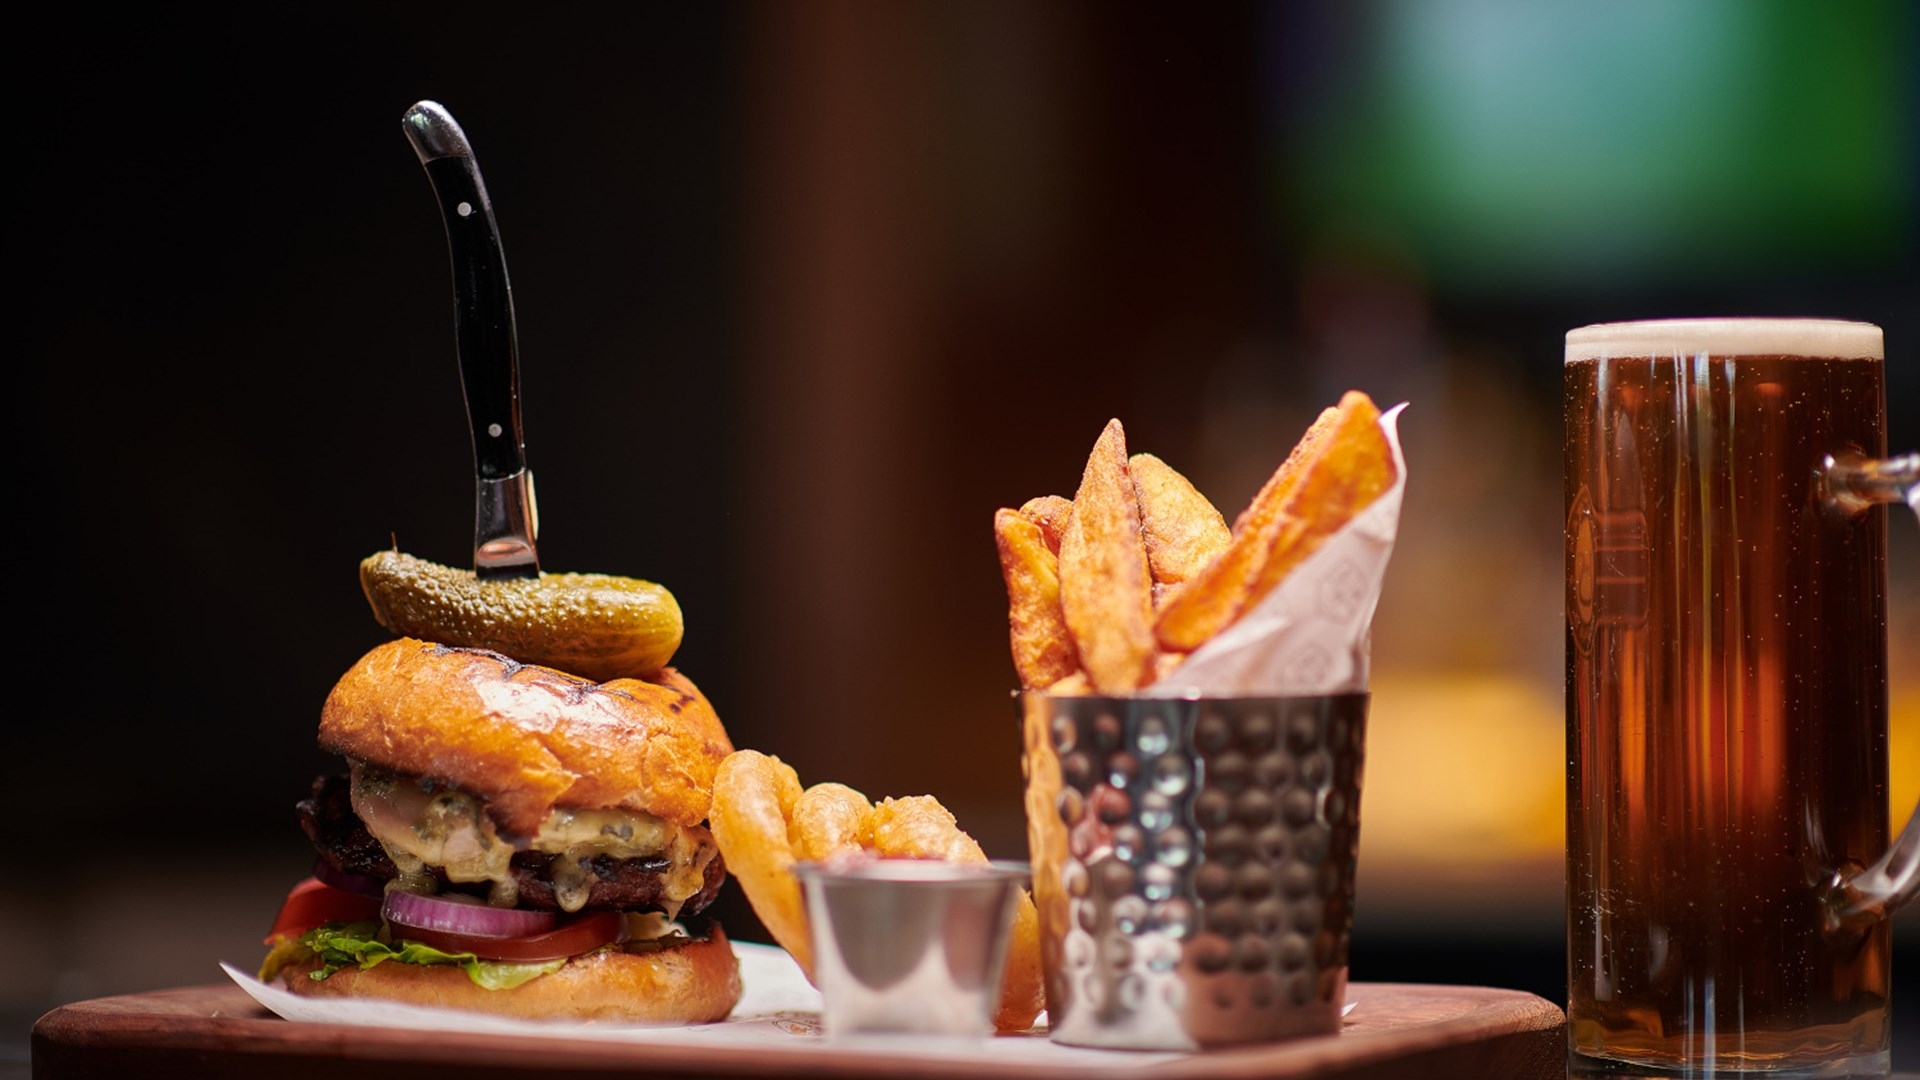 Close up of burger, chips and onion rings laid on a platter, alongside a pint of beer.